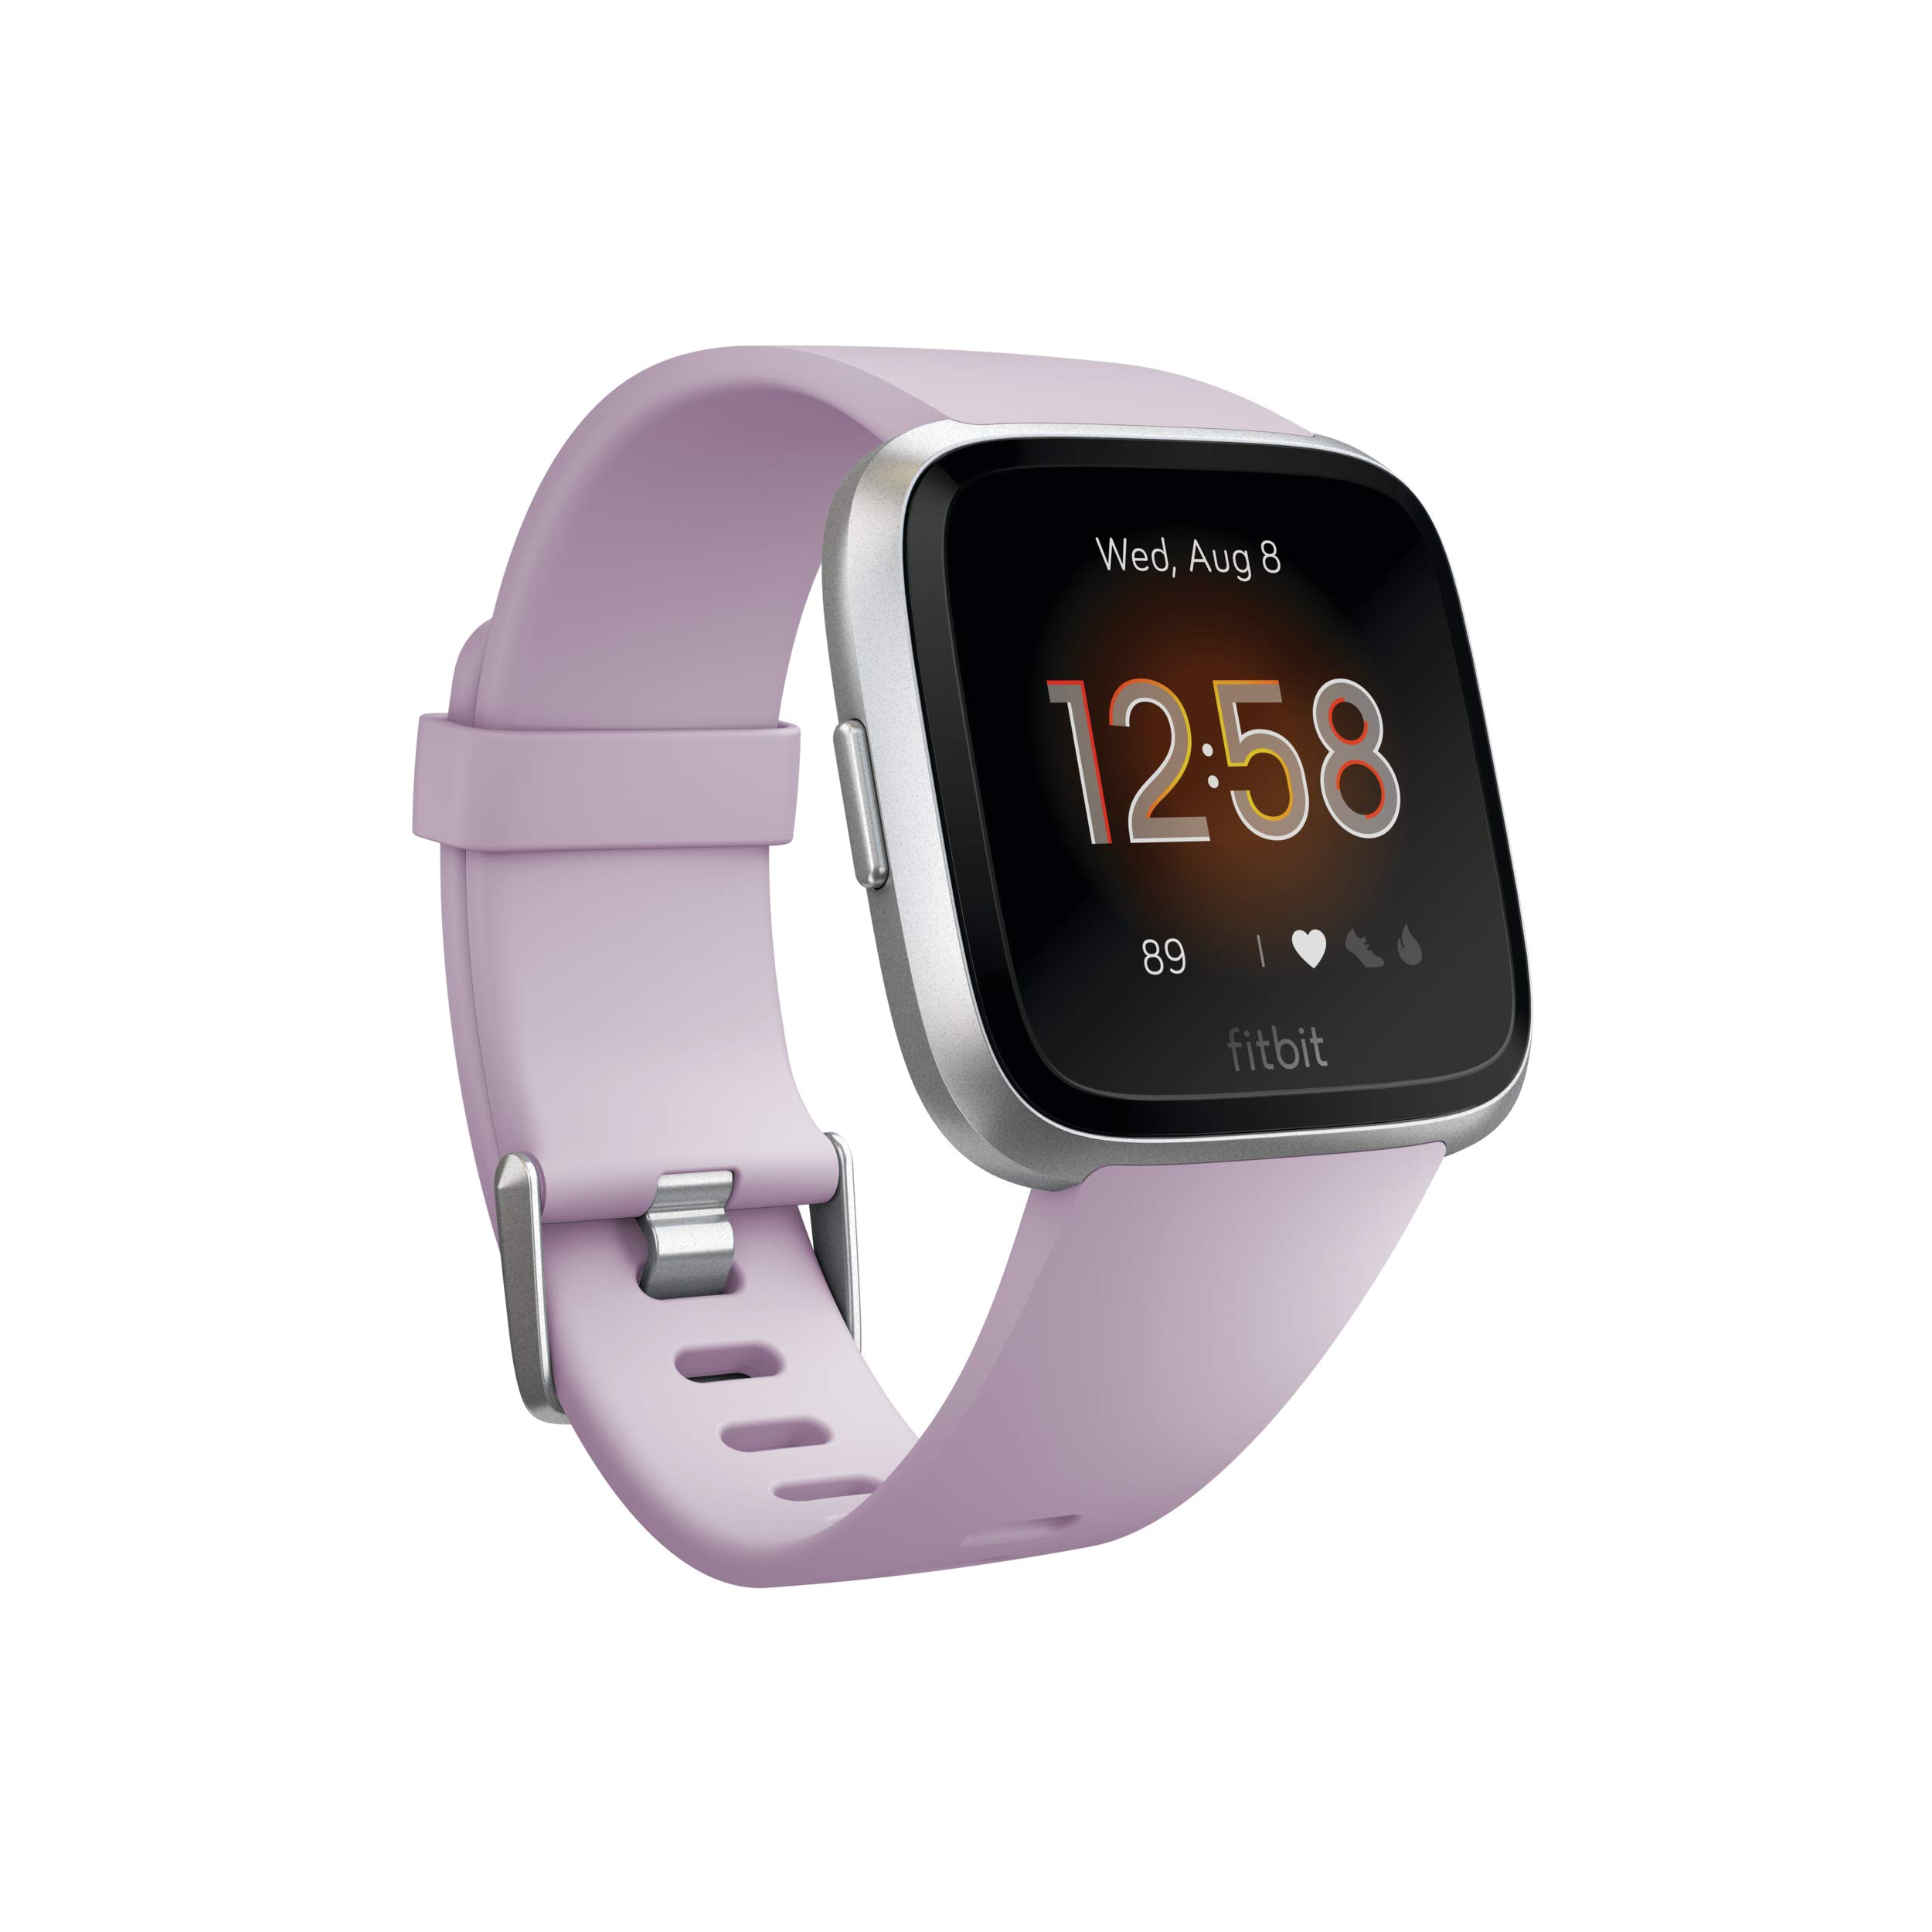 Fitbit Versa Smart Watch included